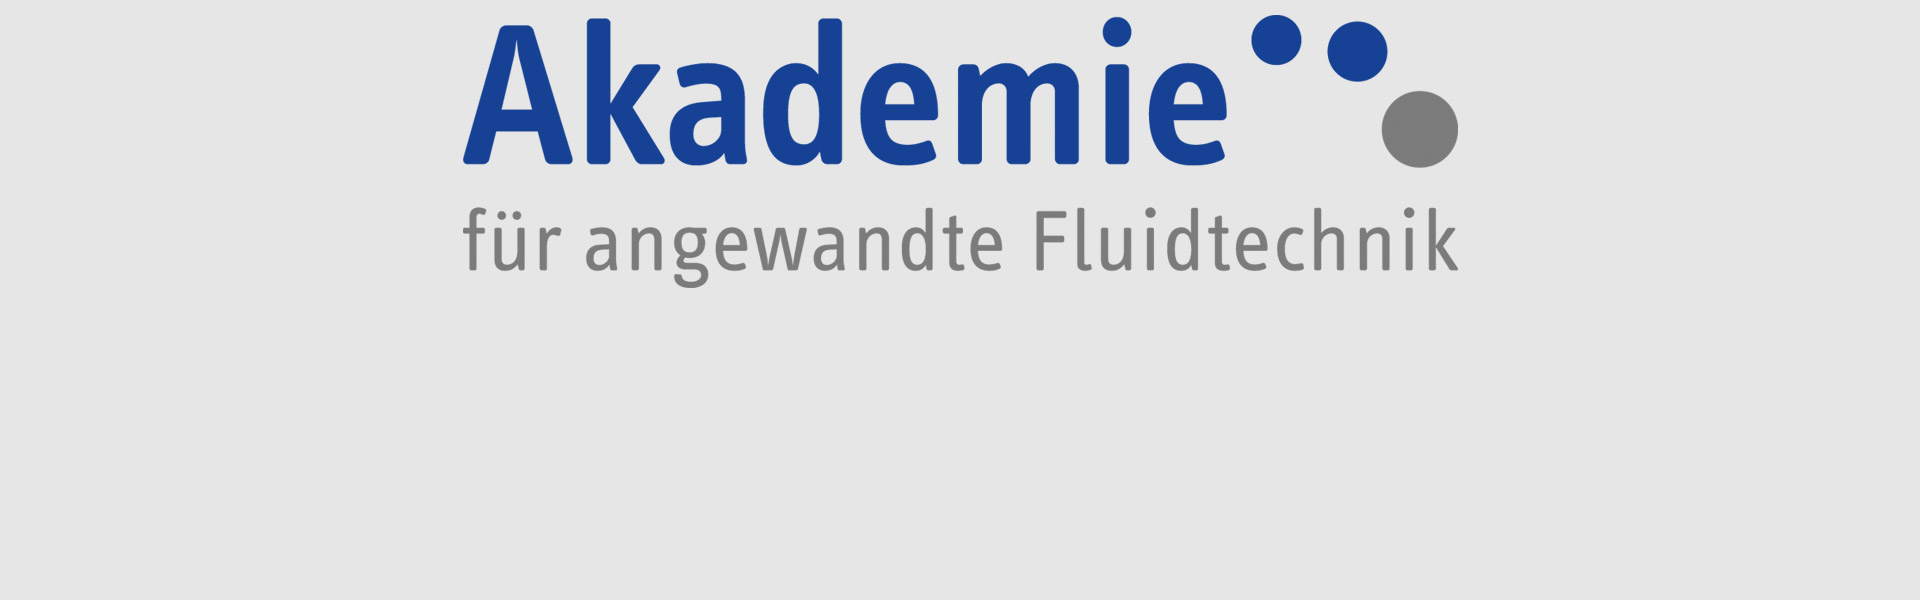 Academy for Applied Fluid Technology GmbH + Co. KG